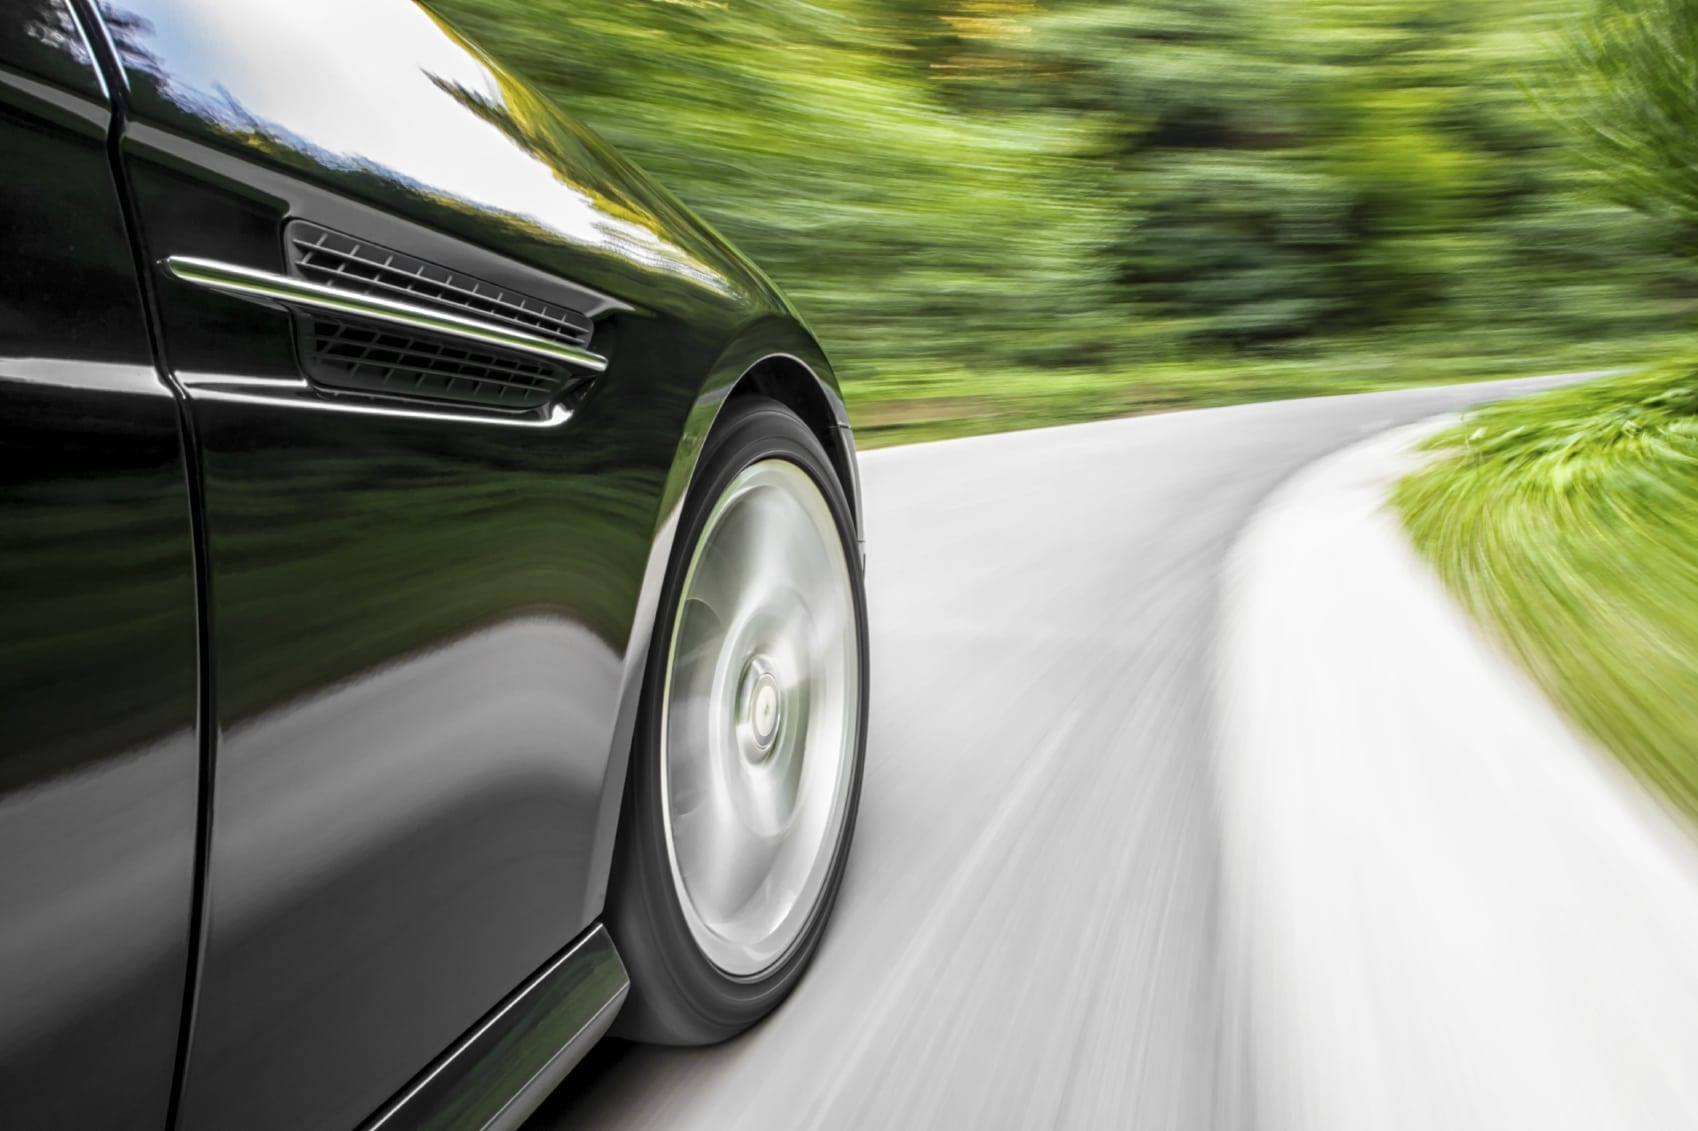 Black Car Driving On A Windy Rural Road Stock Photo